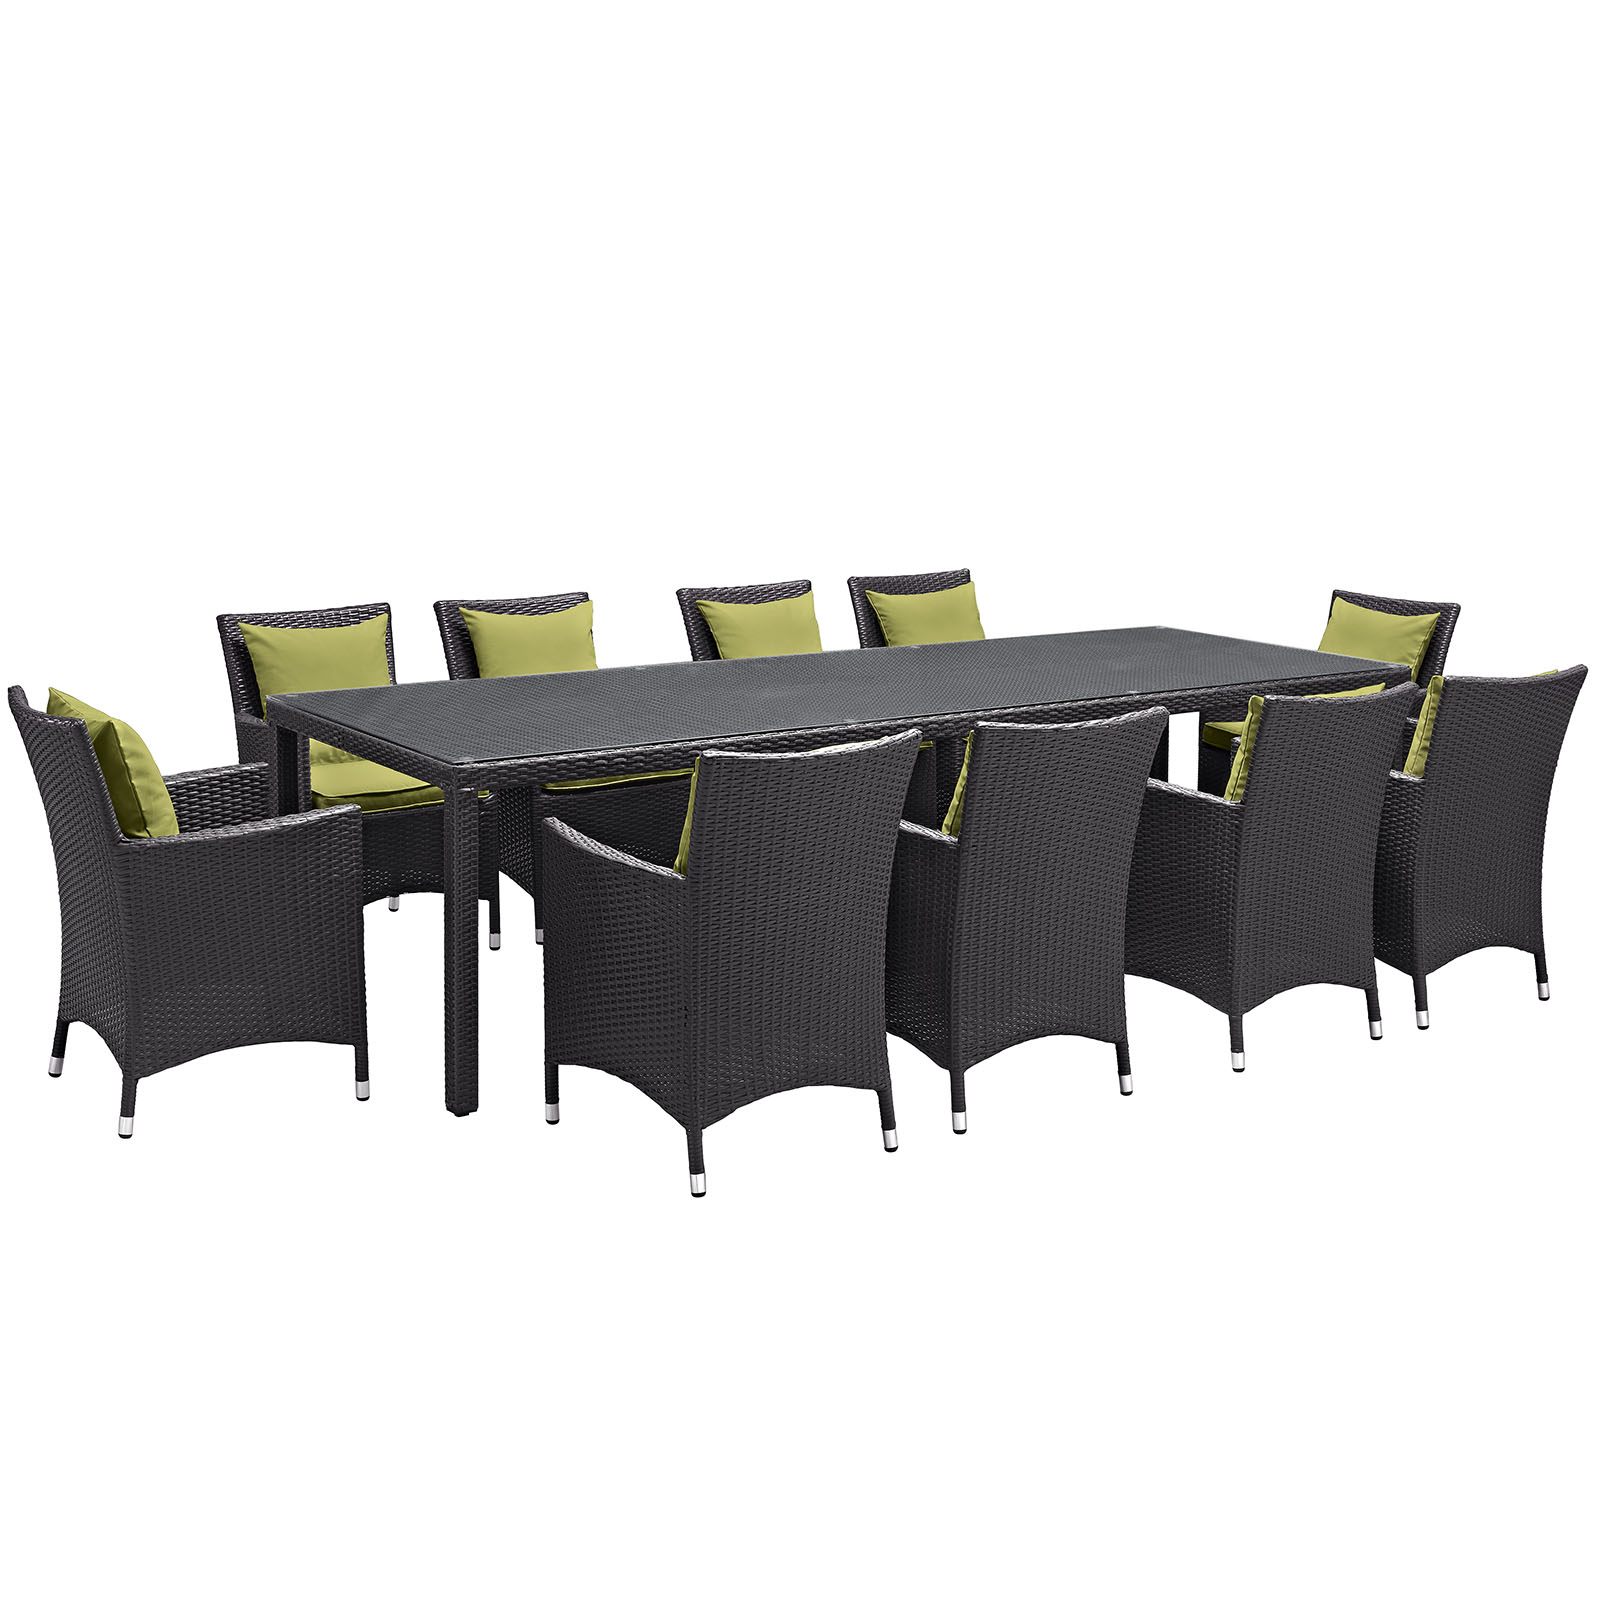 Modern Contemporary Urban Design Outdoor Patio Balcony Eleven PCS Dining Chairs and Table Set, Green, Rattan